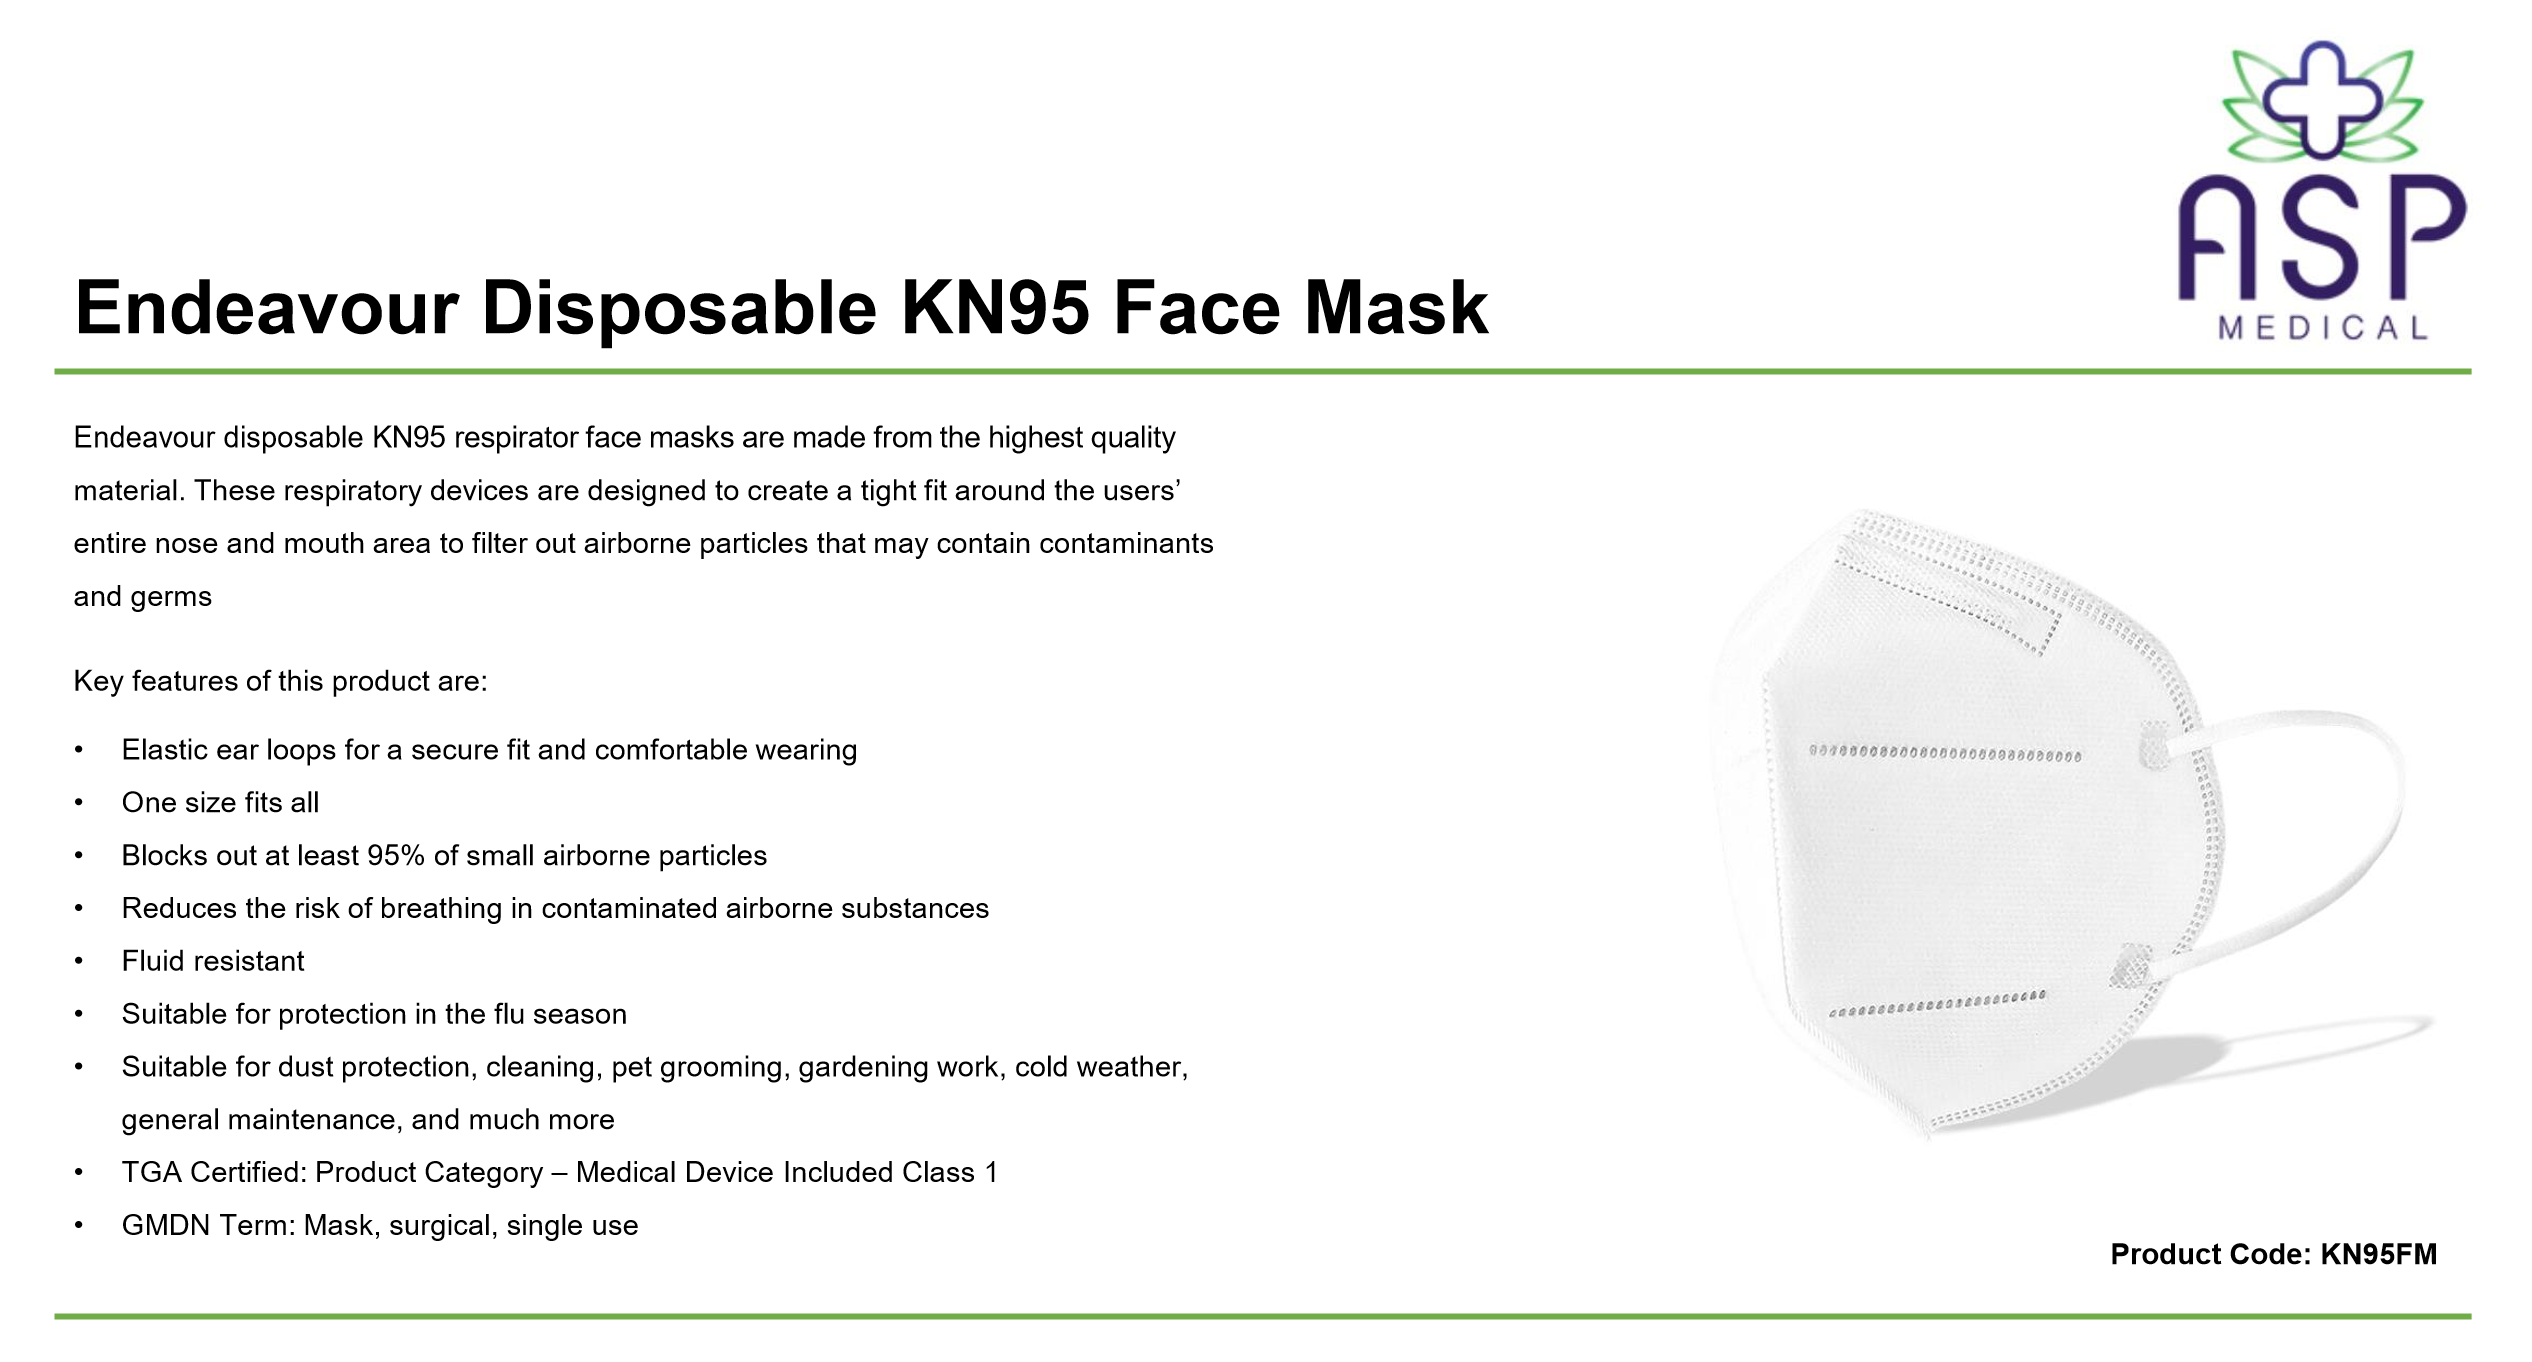 kn95-face-mask-disposable.png